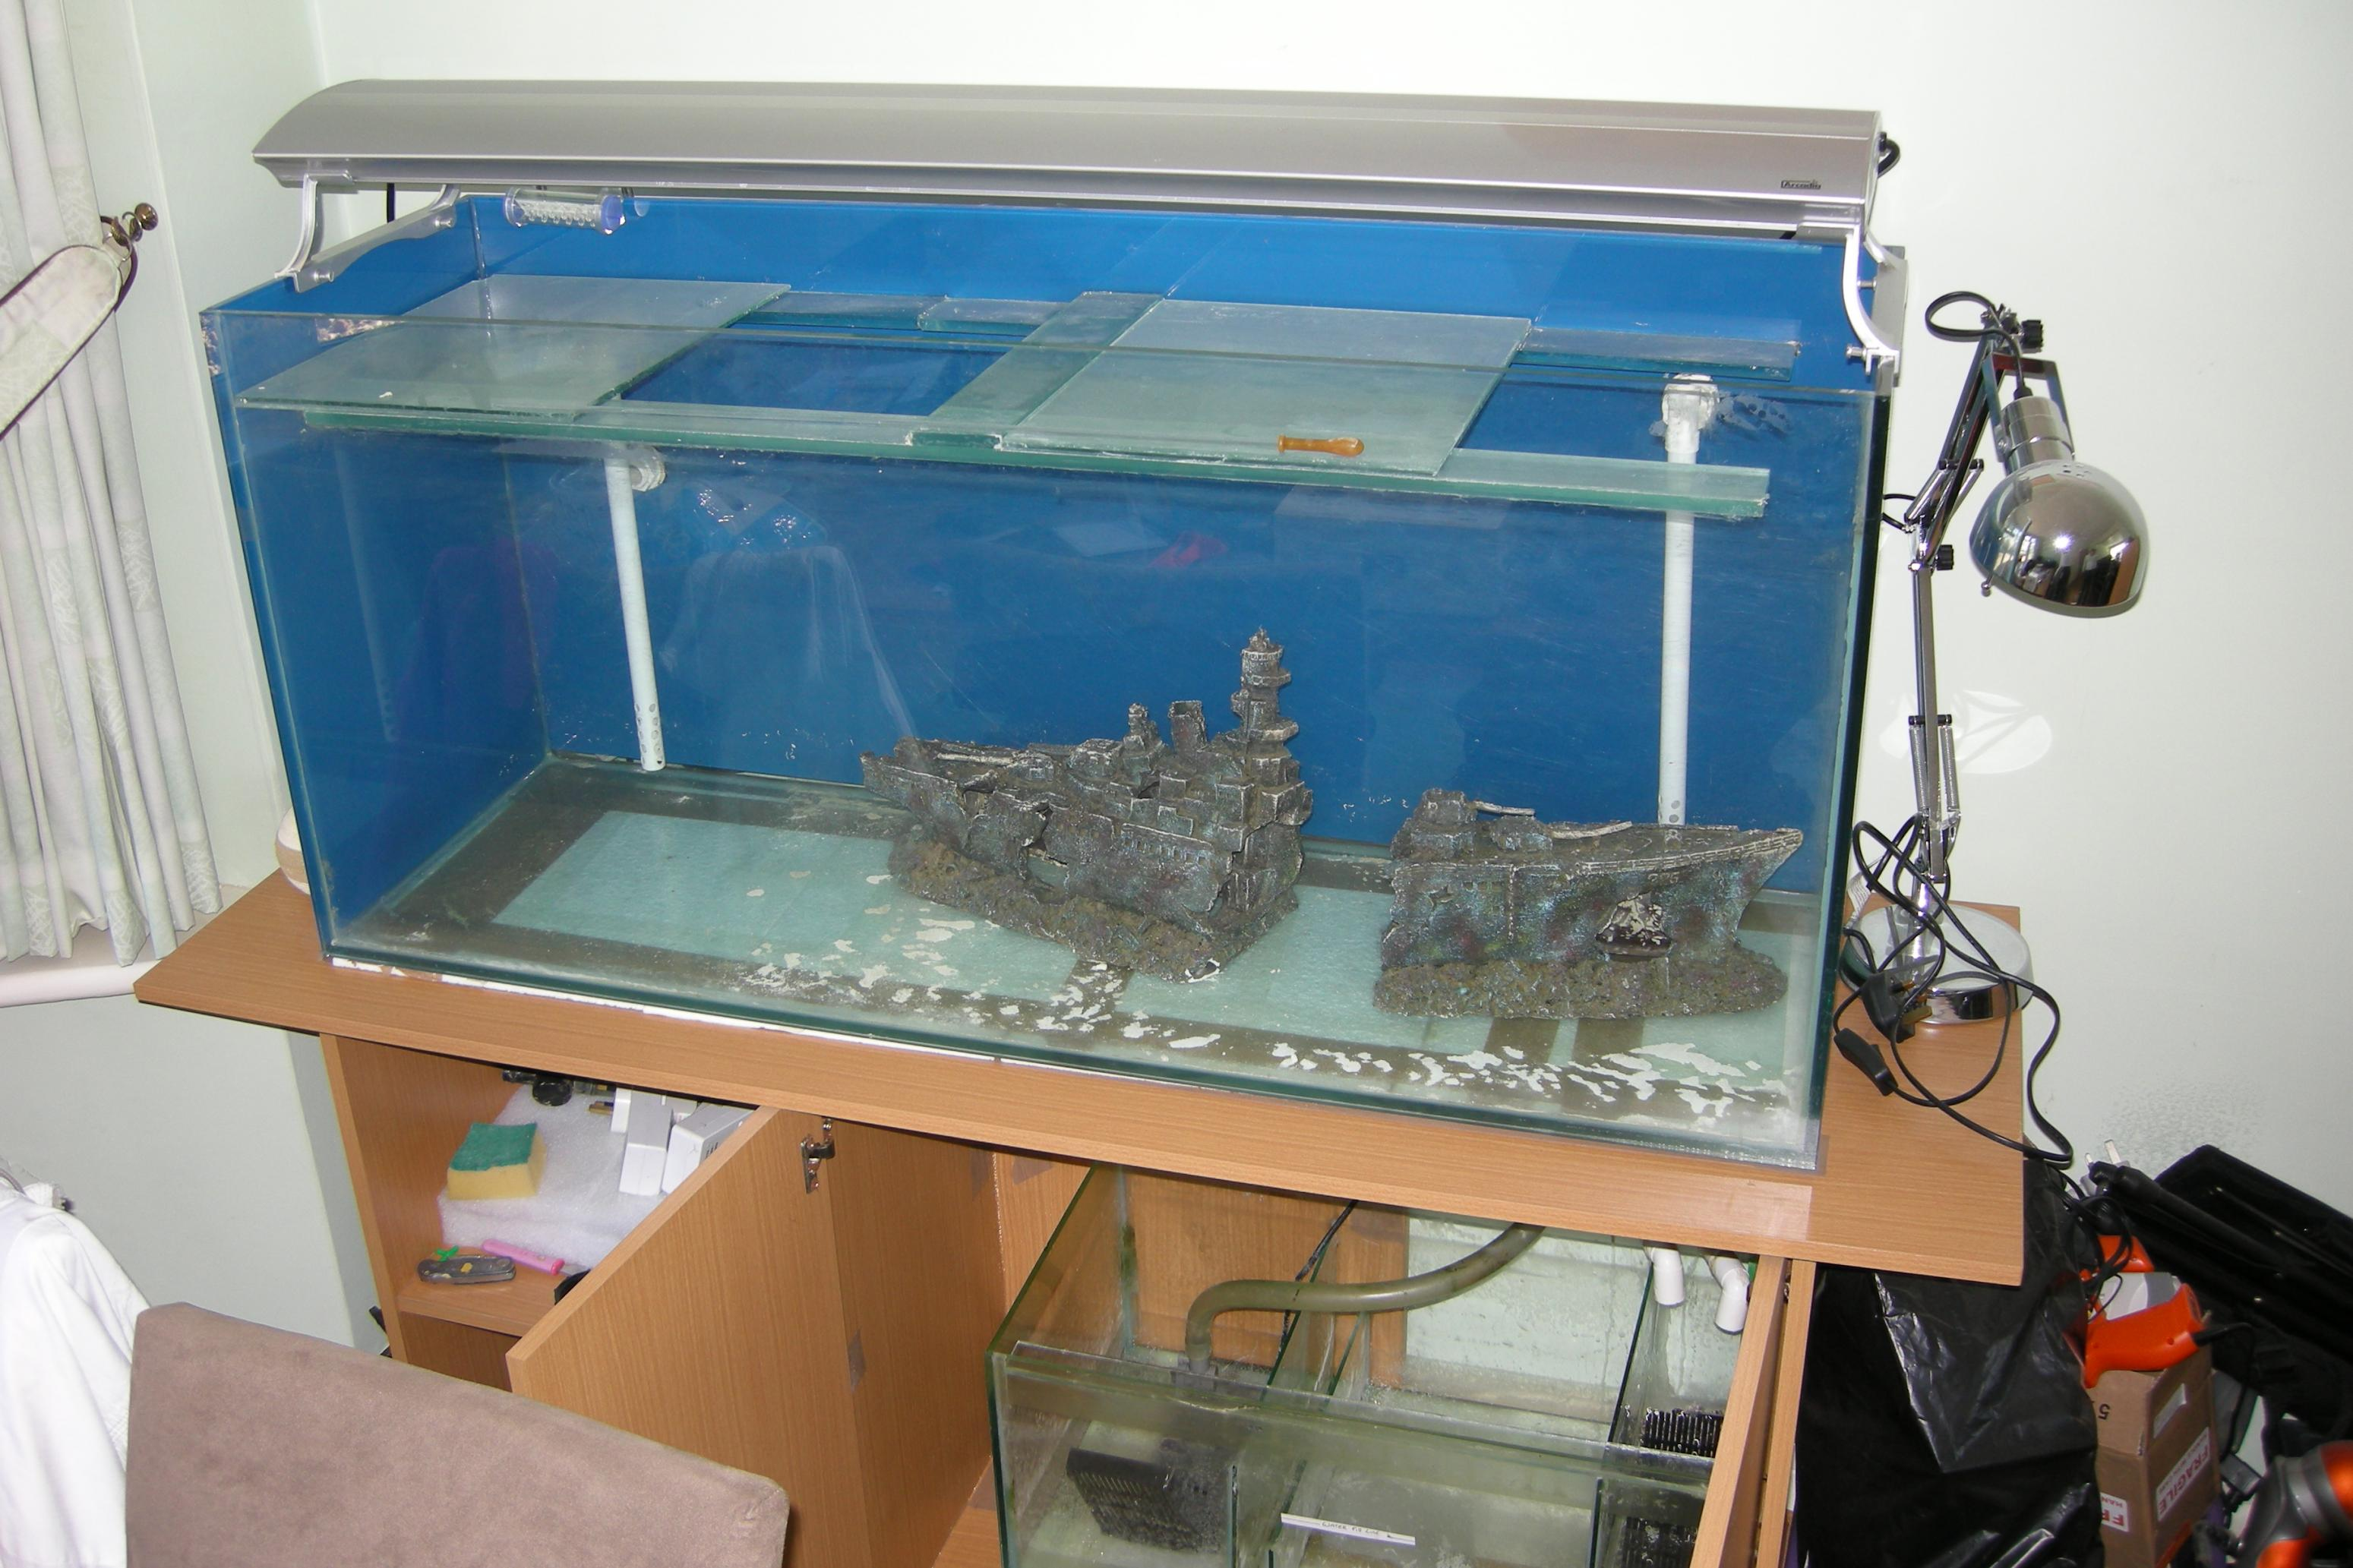 Saltwater fish 4 sale colorful saltwater fish for sale for Aquarium fish for sale online